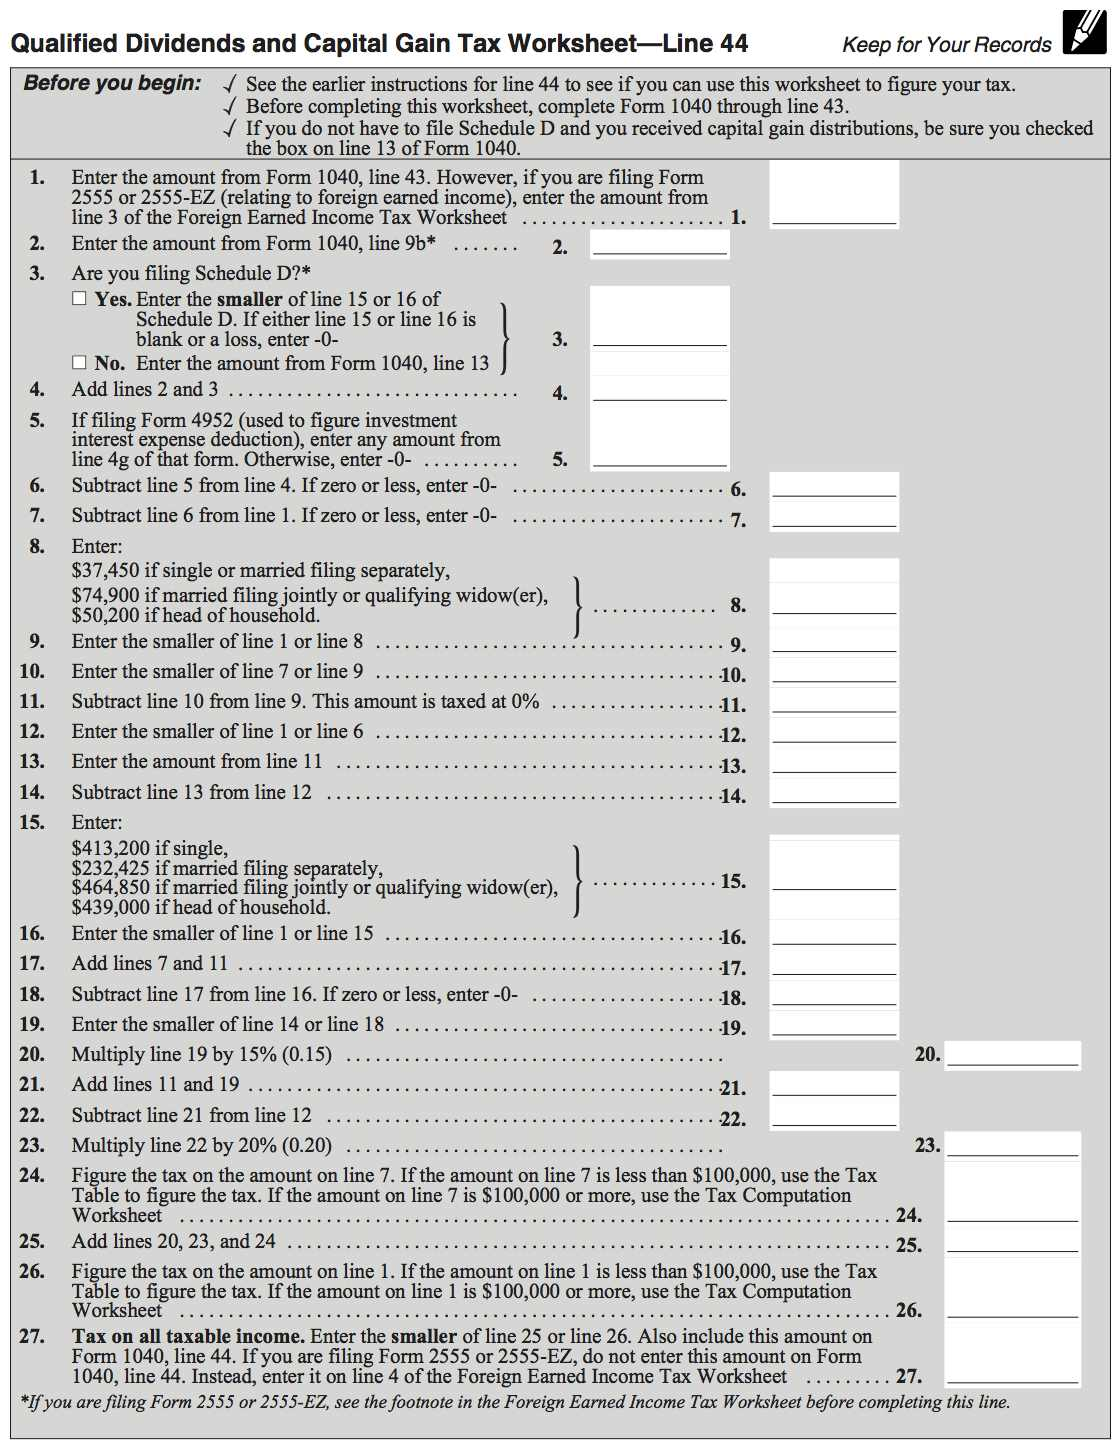 worksheet Irs Qualified Dividends And Capital Gains Worksheet irs form qualified dividends and capital gains tax worksheet publication 17 2016 your federal income tax